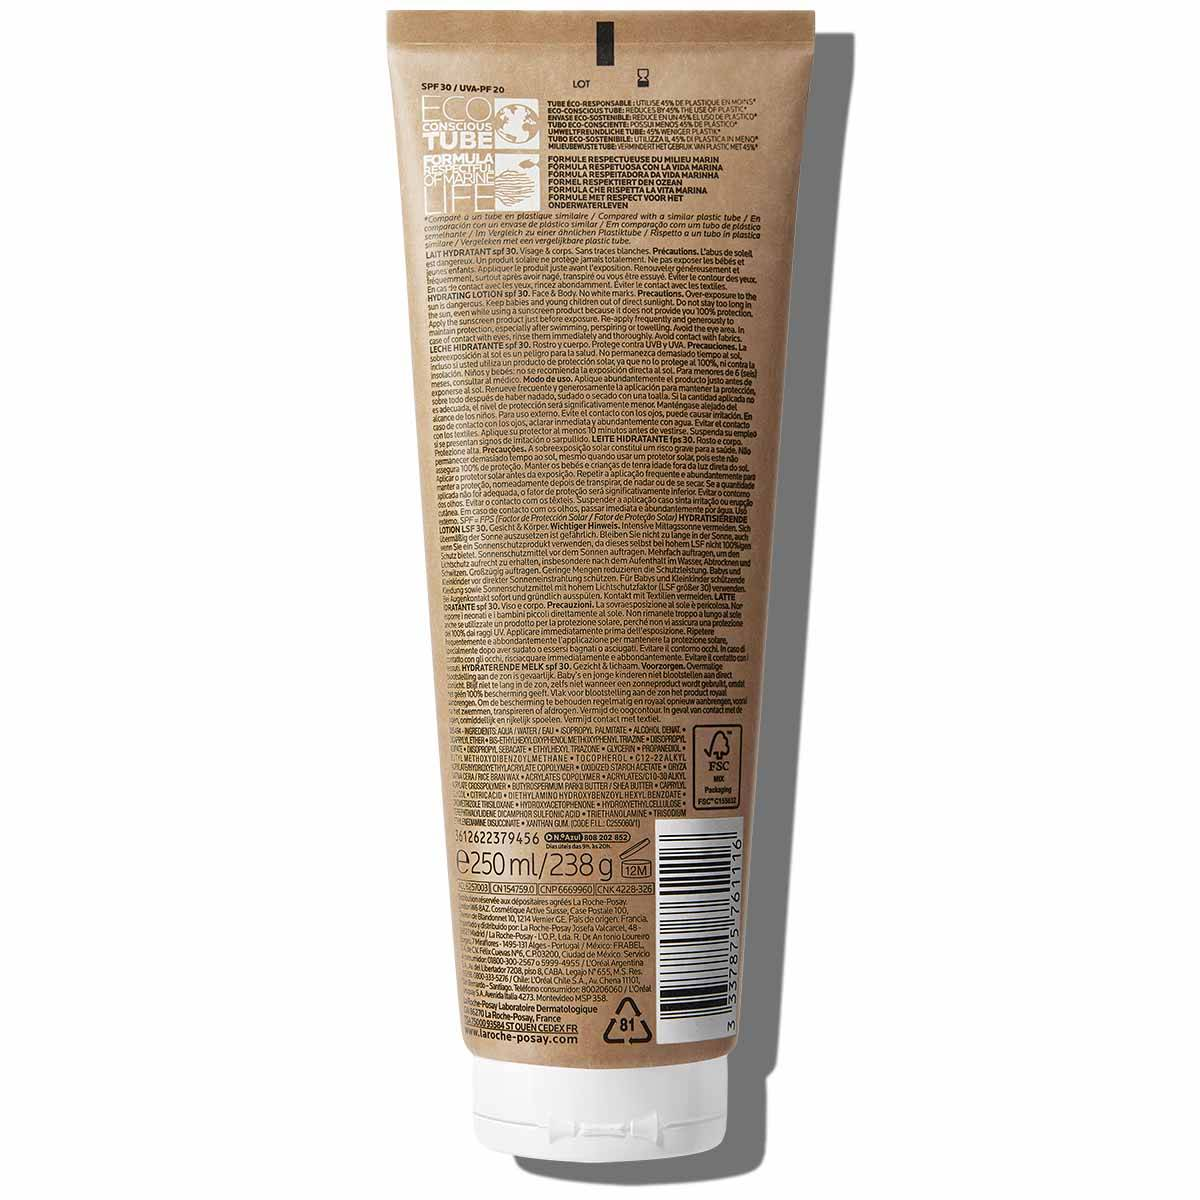 LaRochePosay-Product-Sun-Anthelios-HydratingLotionSpf30-250ml-EcoConscious-3337875761116_BSS